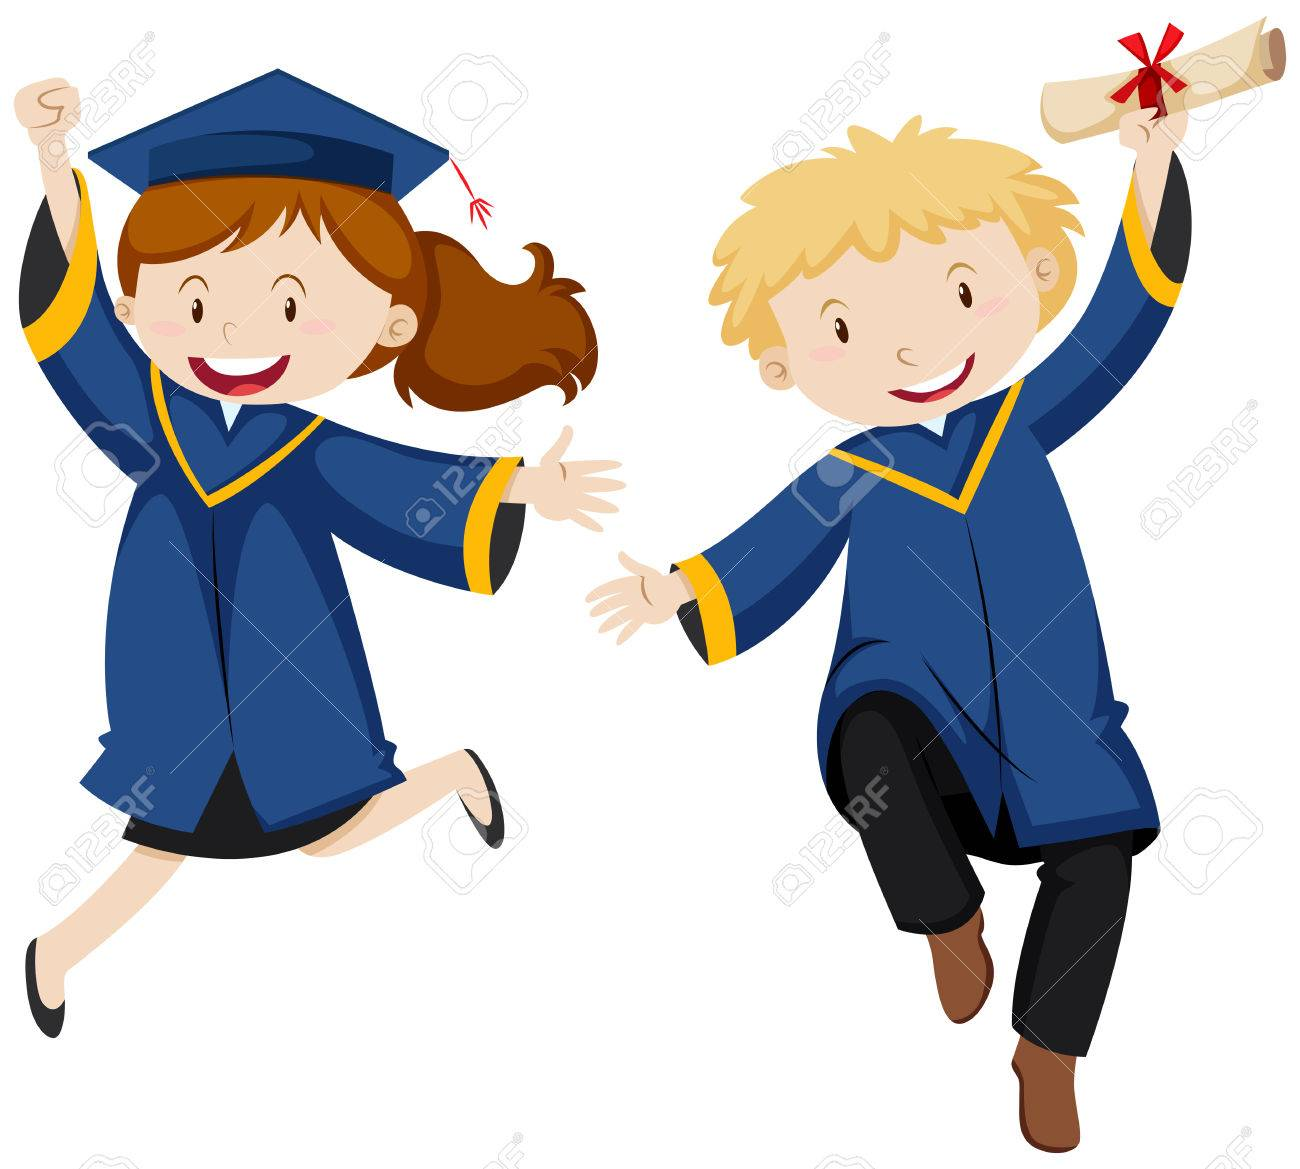 Boy And Girl In Graduation Gown Illustration Royalty Free Cliparts ...